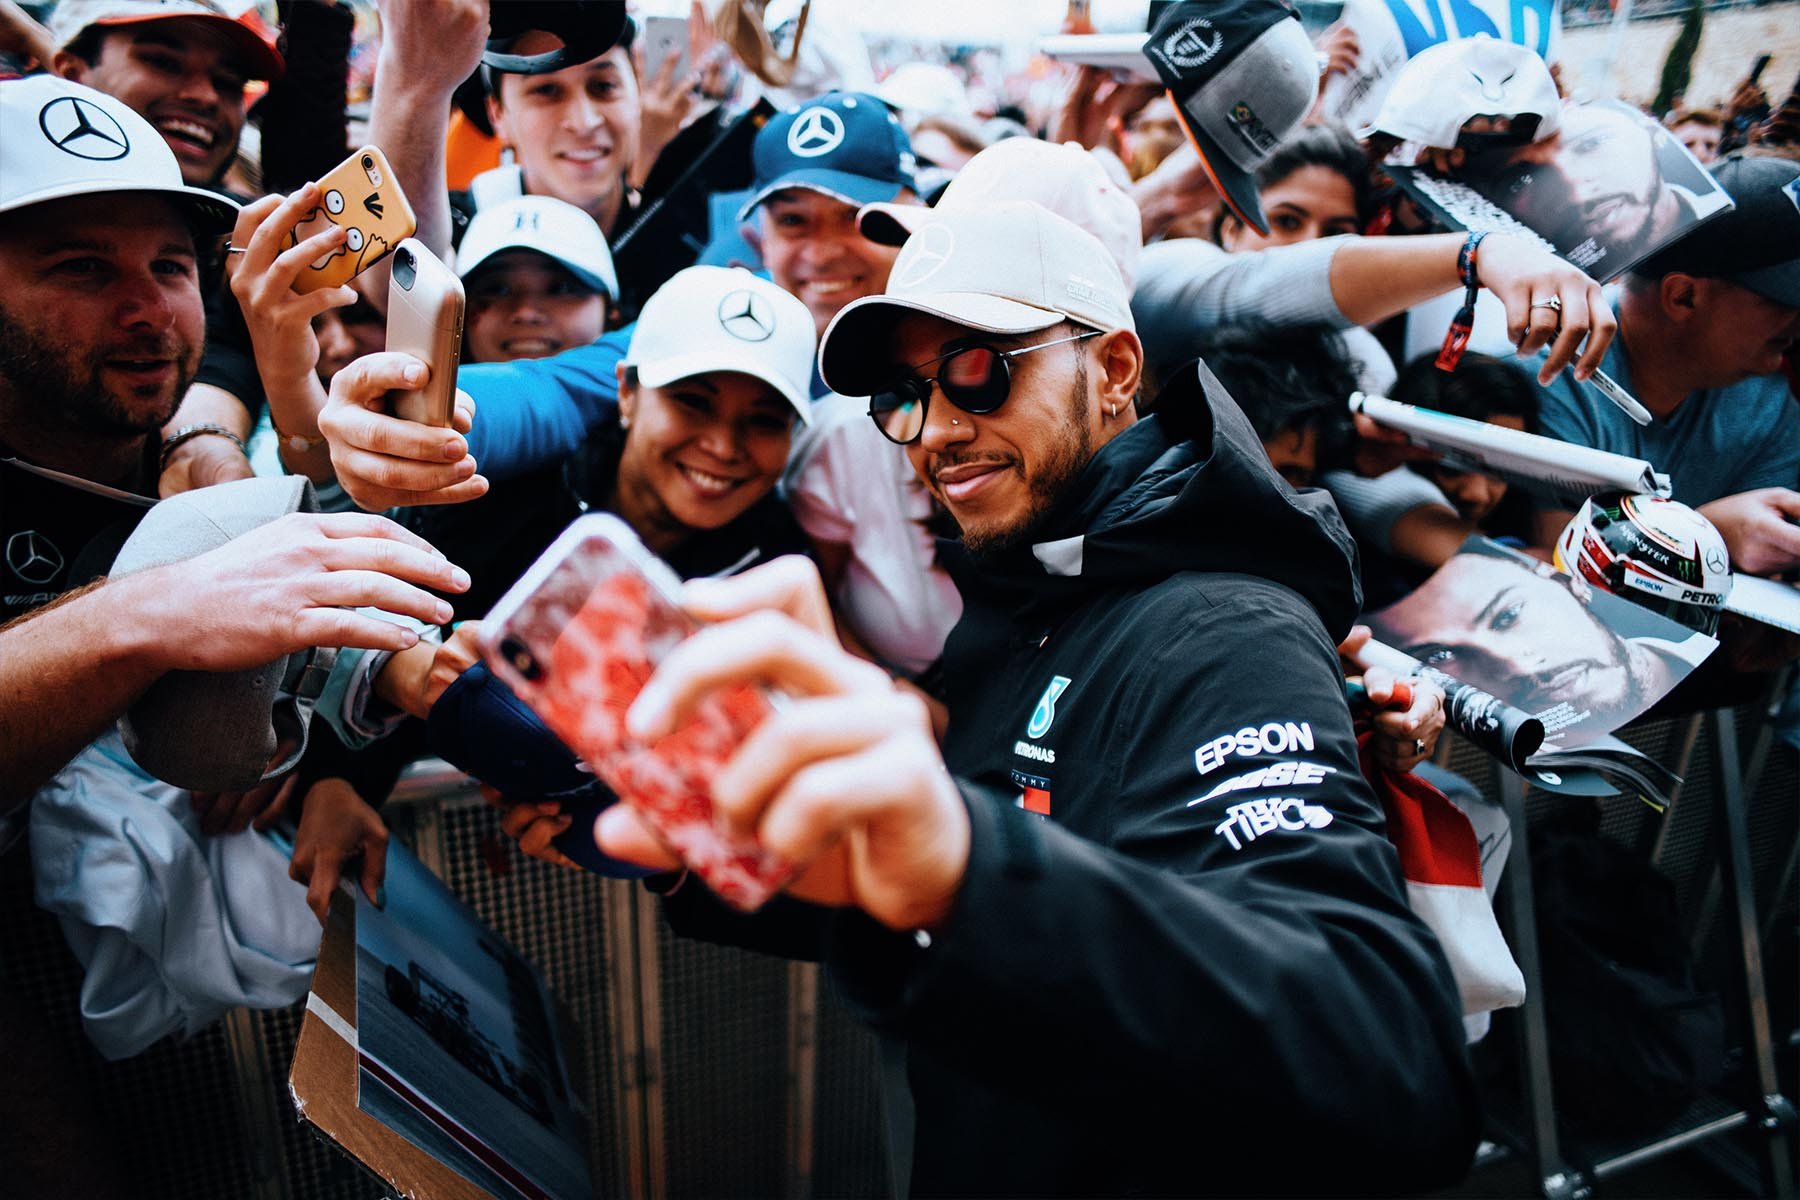 Lewis Hamilton at the 2018 United States Grand Prix.